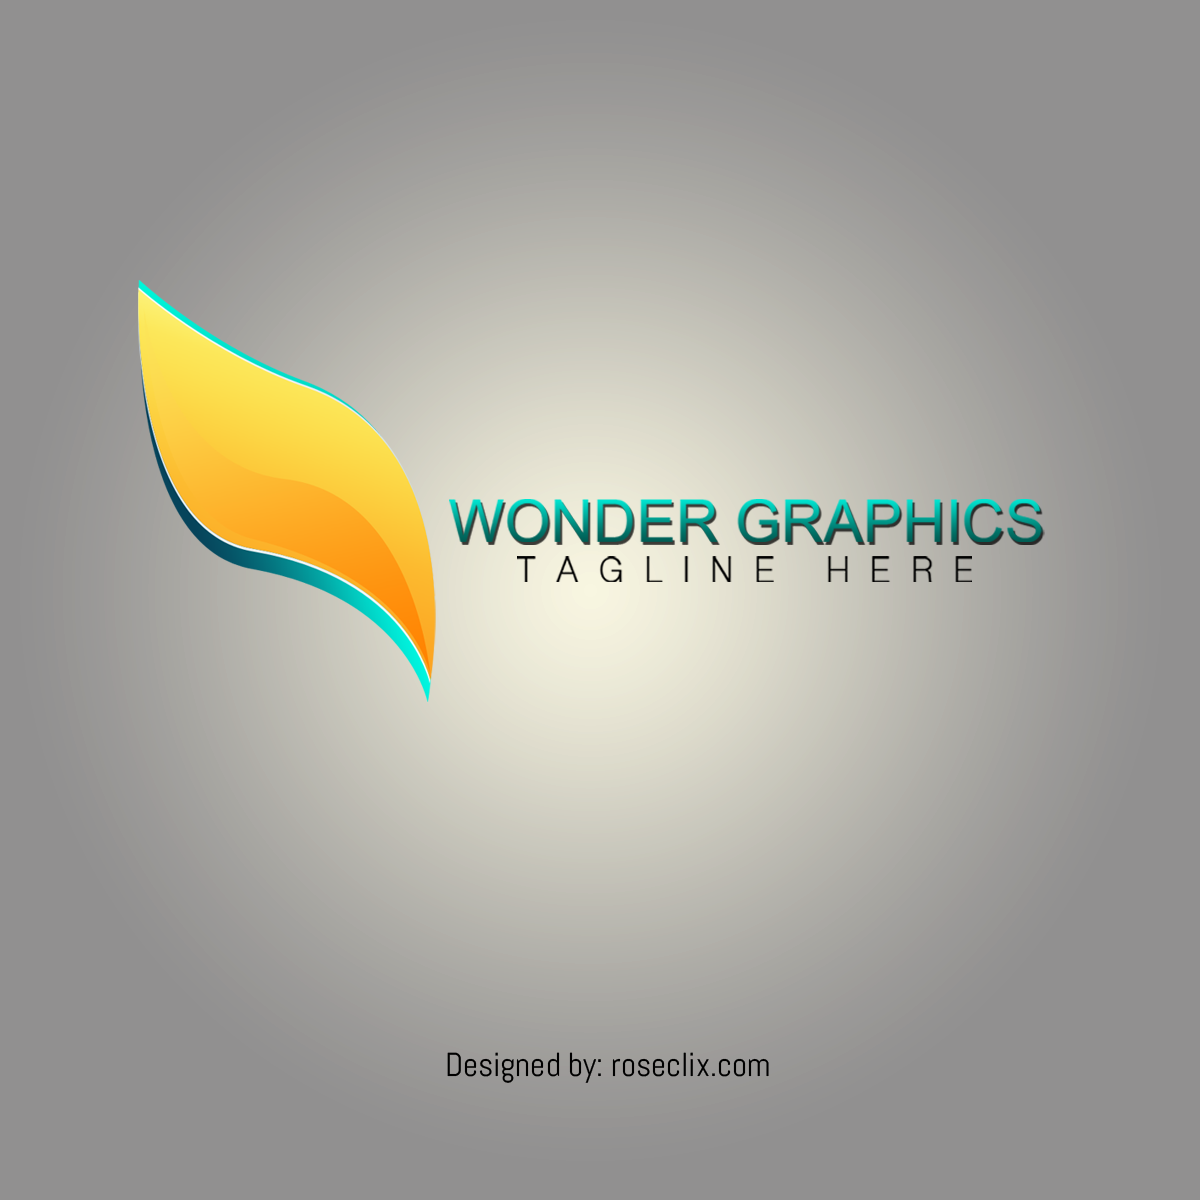 Wonder graphics logo Design Template free by ROSEWALLPAPERS